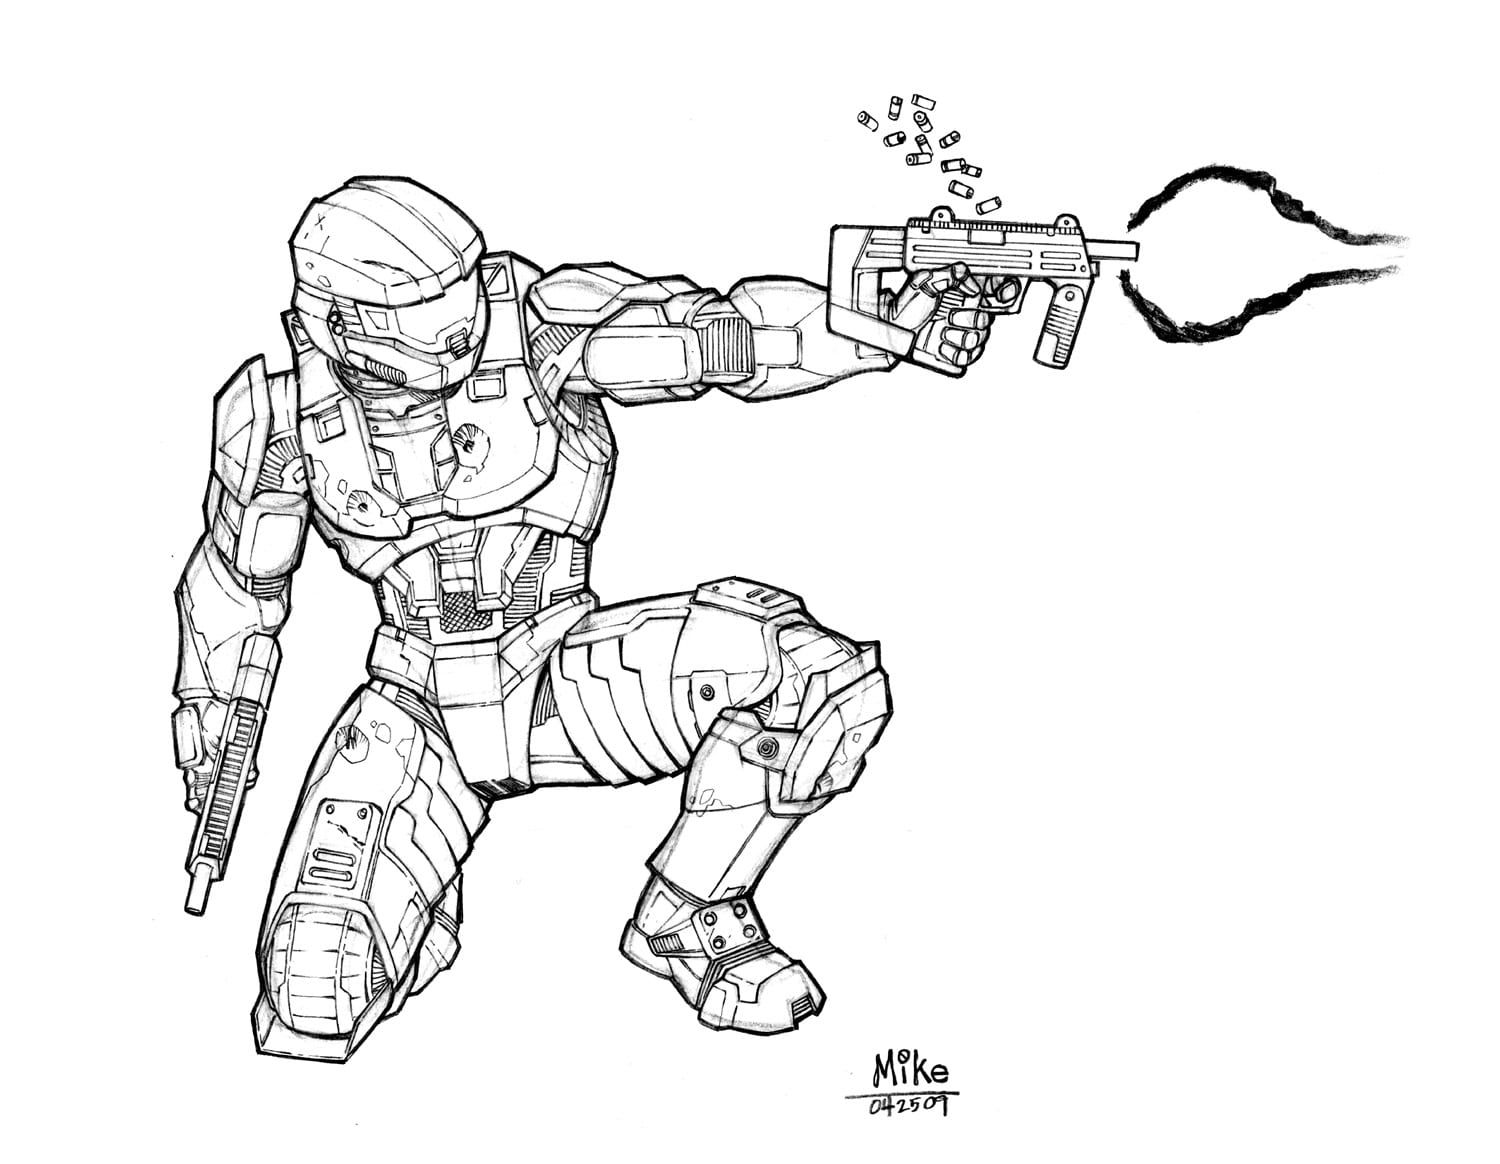 Halo Master Chief Coloring Pages Halo Drawings Halo Master Chief Halo Armor